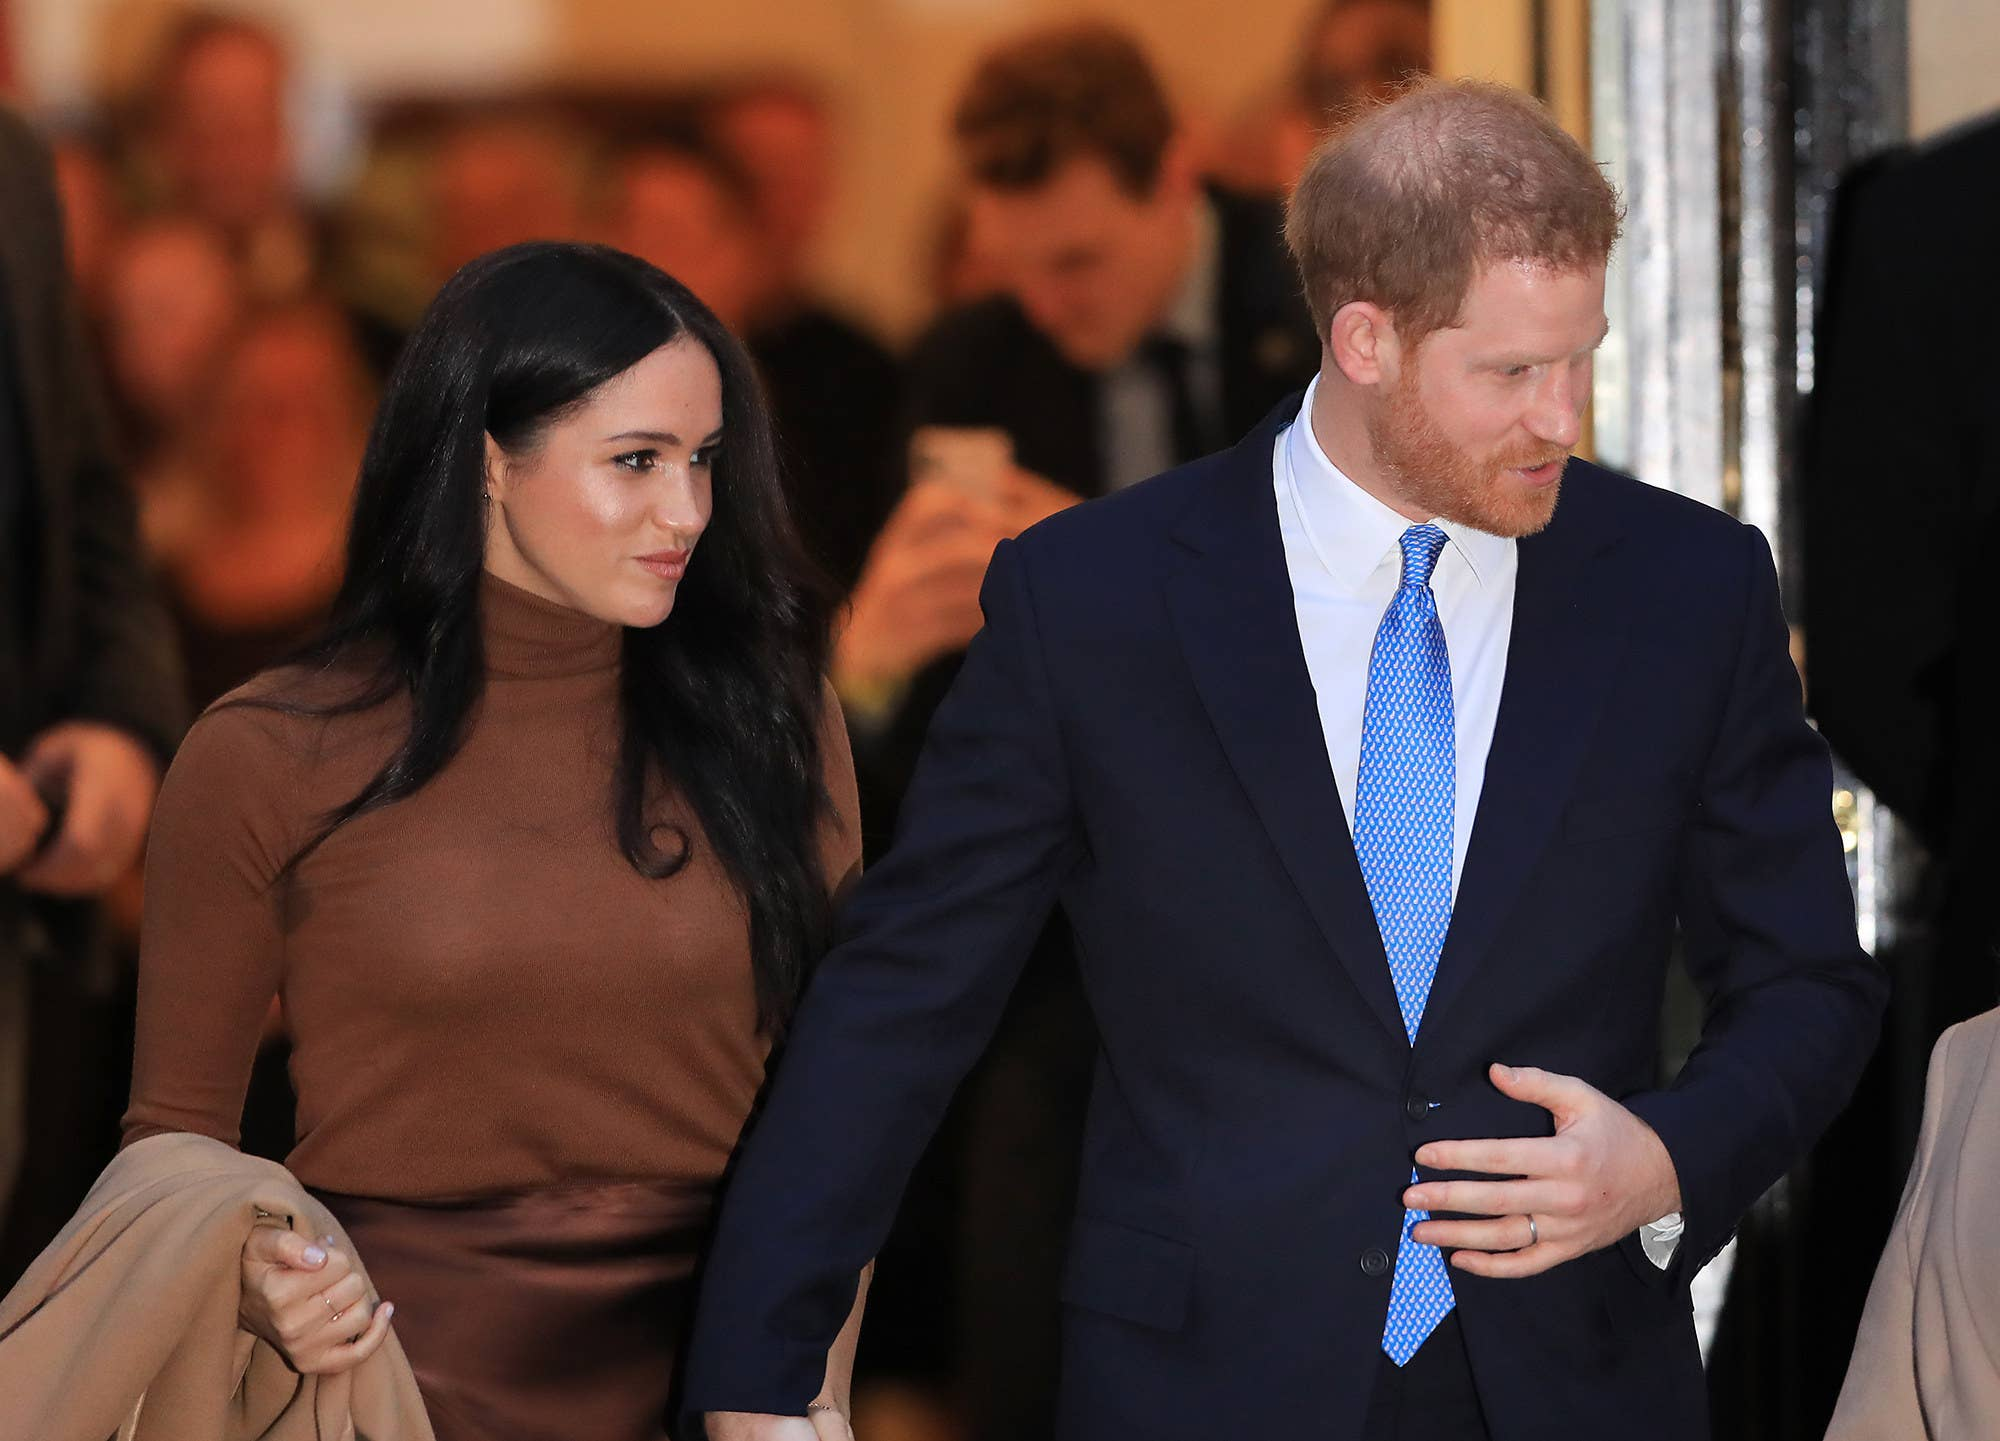 Meghan Markle And Prince Harry Are American Celebrities Now